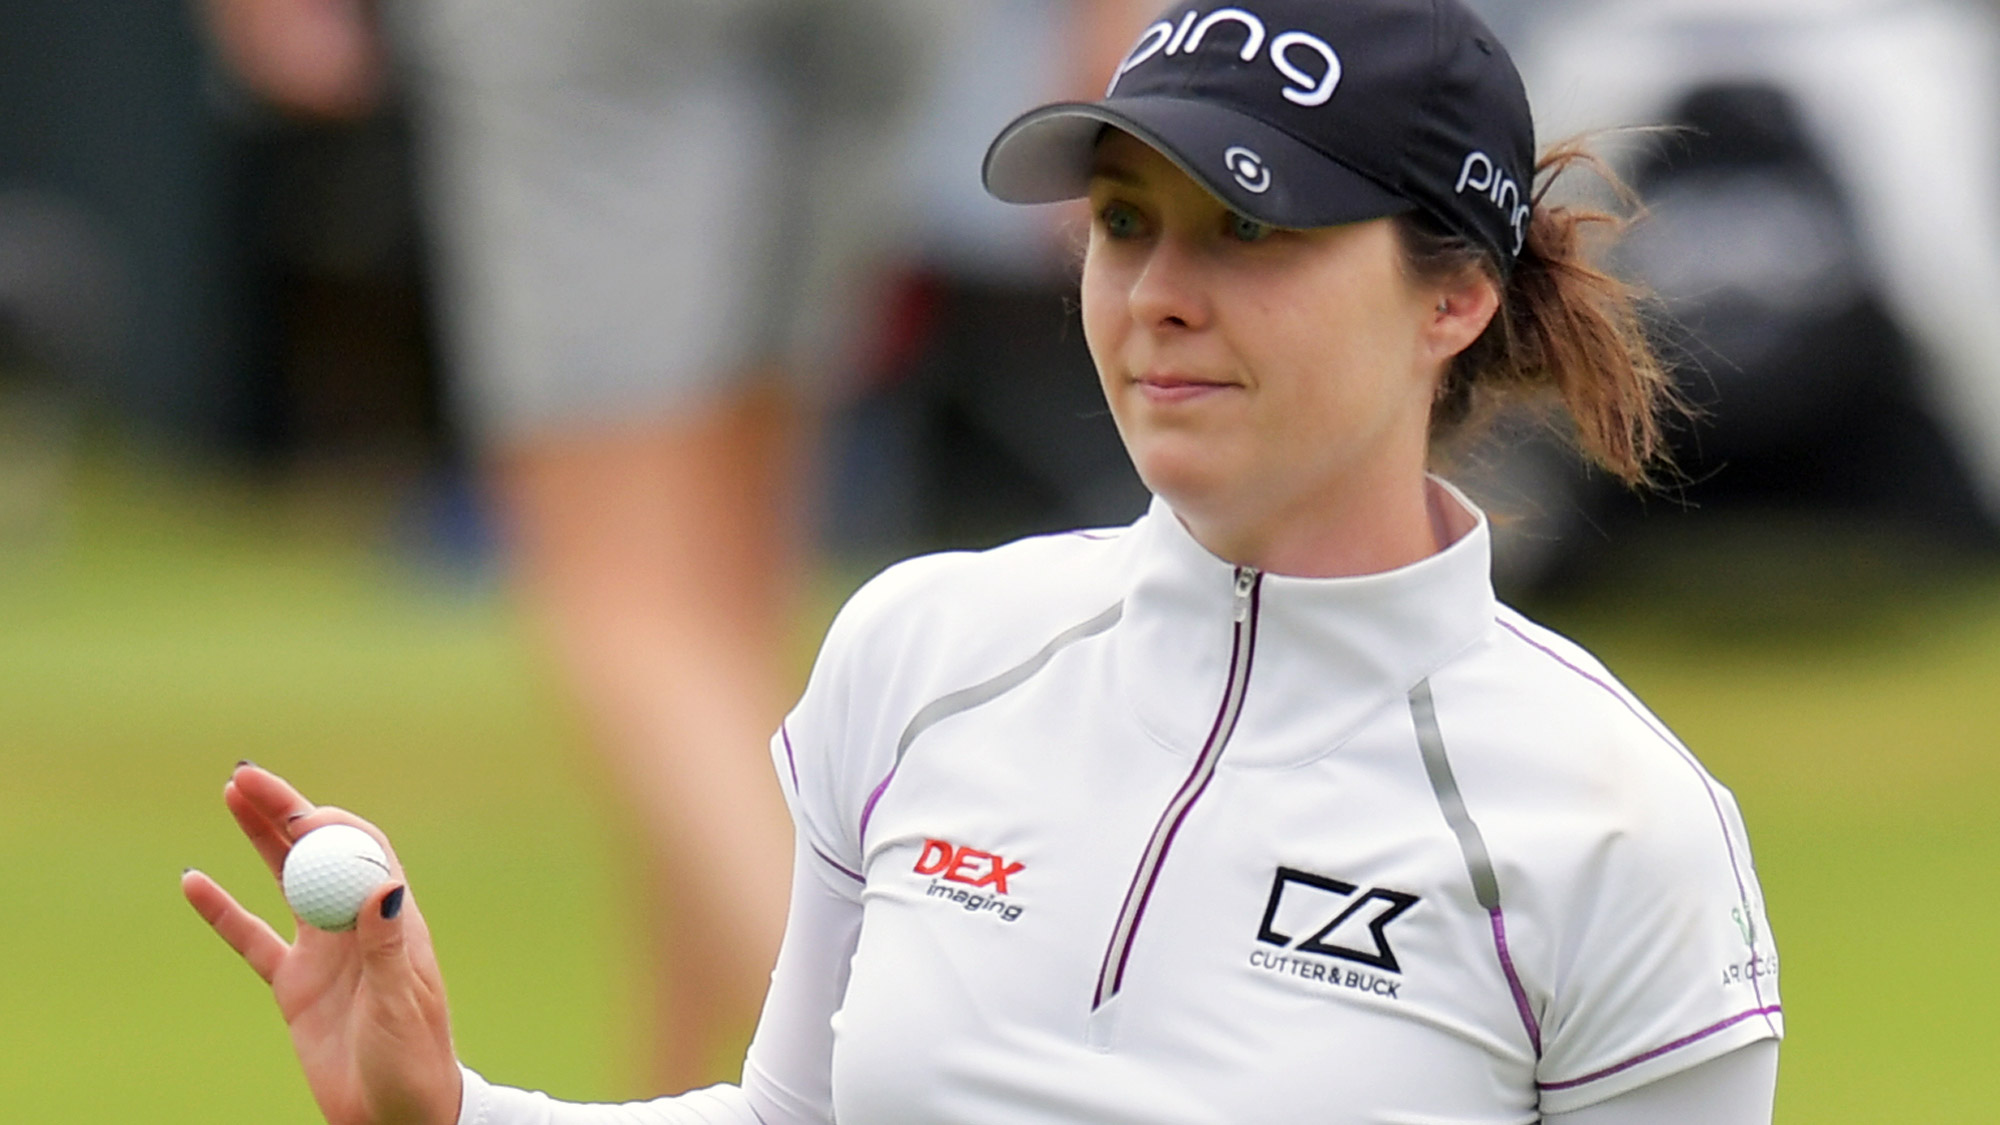 Energized Park takes aim at 8th major in KPMG Women's PGA